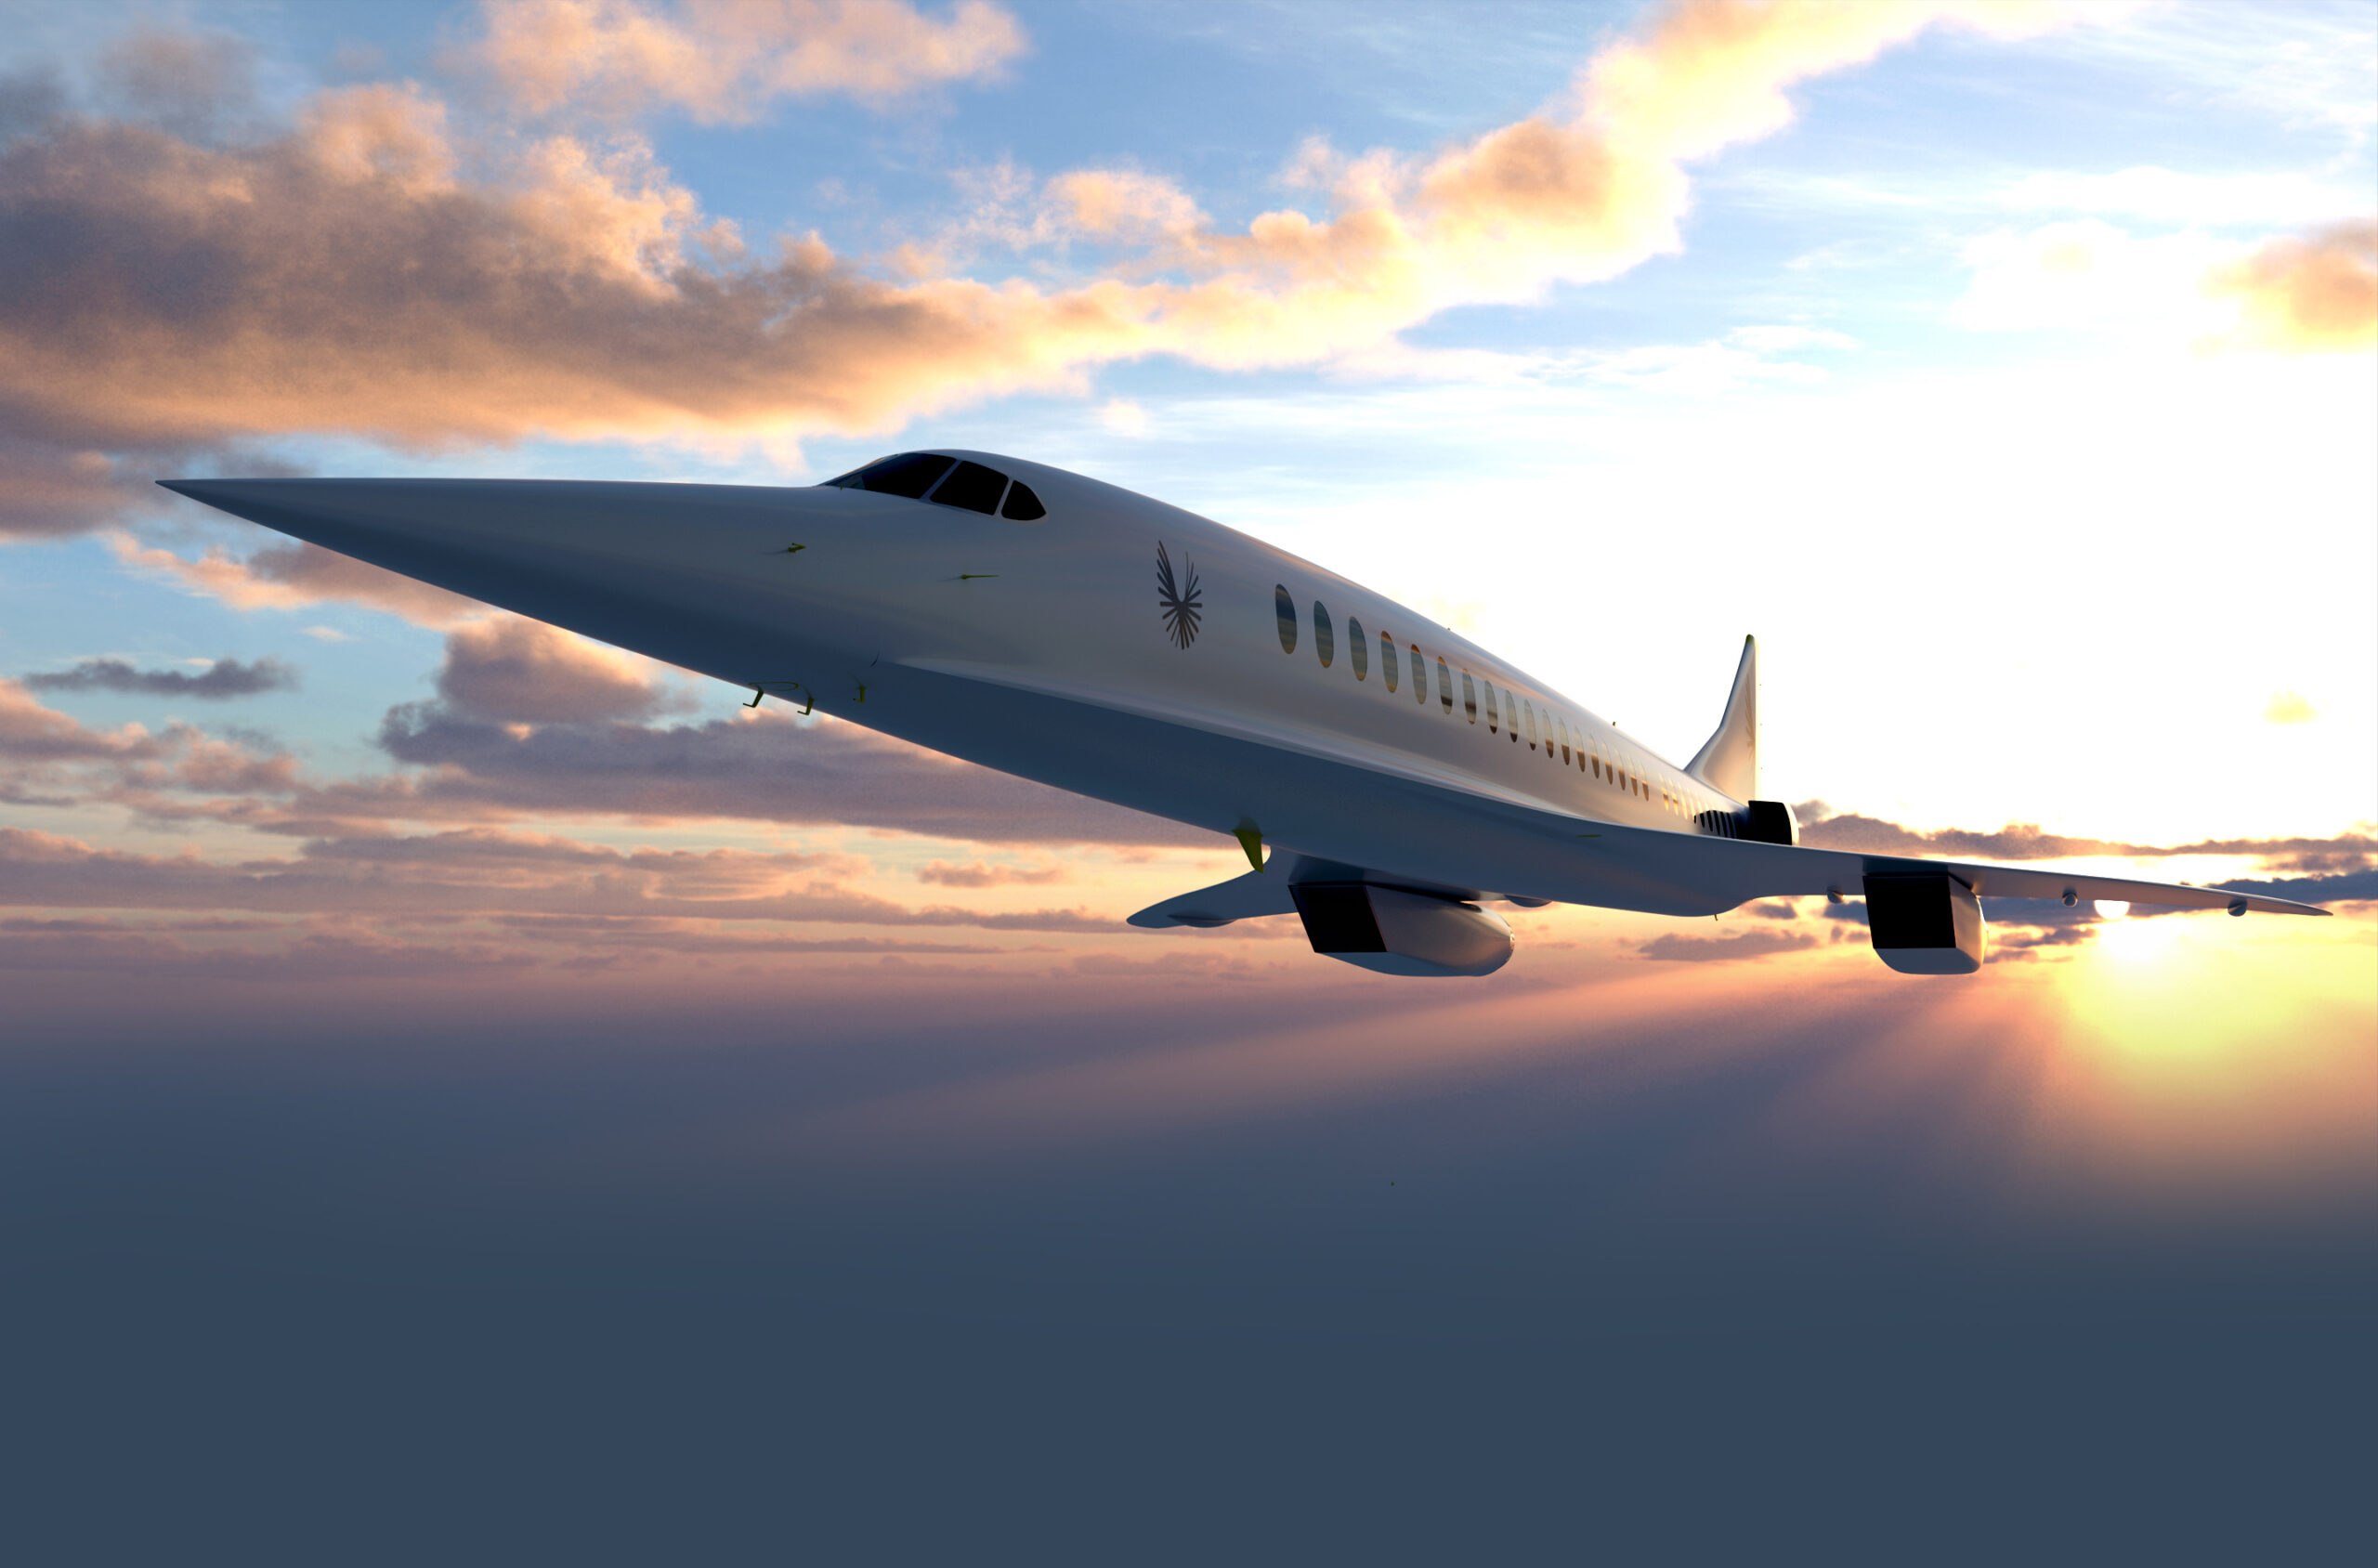 AWS and Boom Supersonic partner on world's fastest aircraft